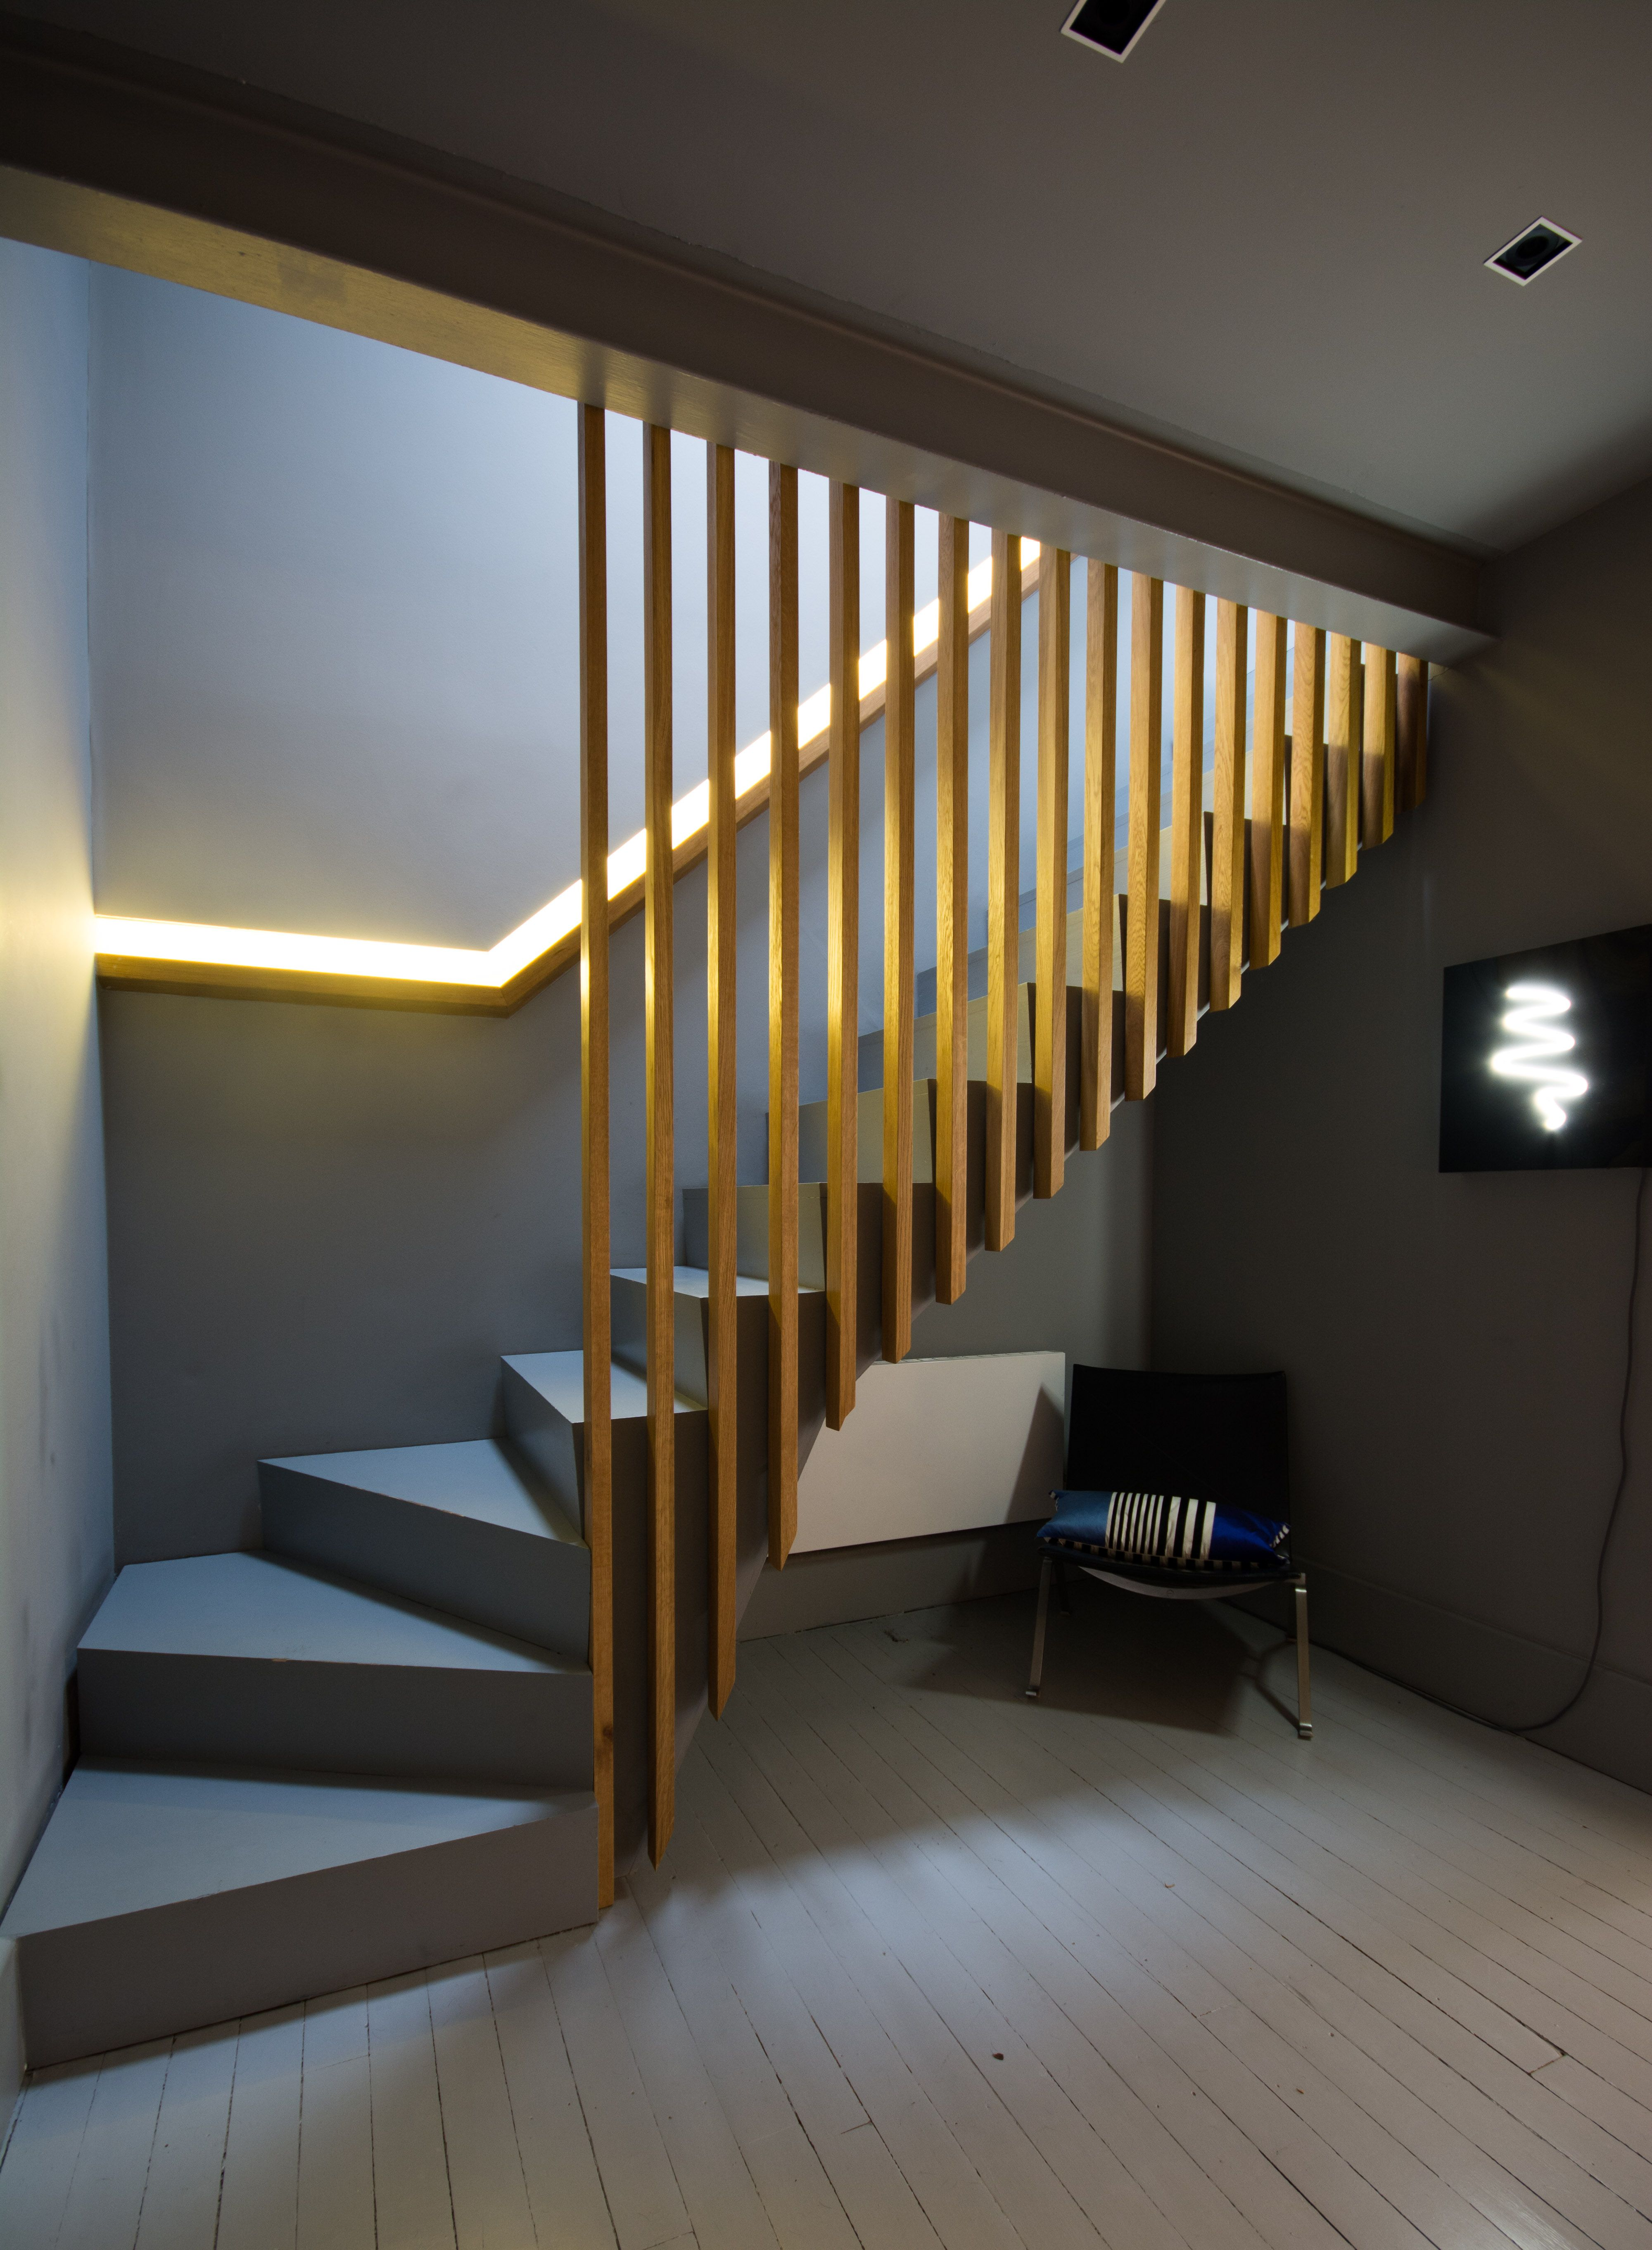 Raumteiler Holzlamellen Slatted Oak Stairs And Balustrade Oak Handrail Recessed